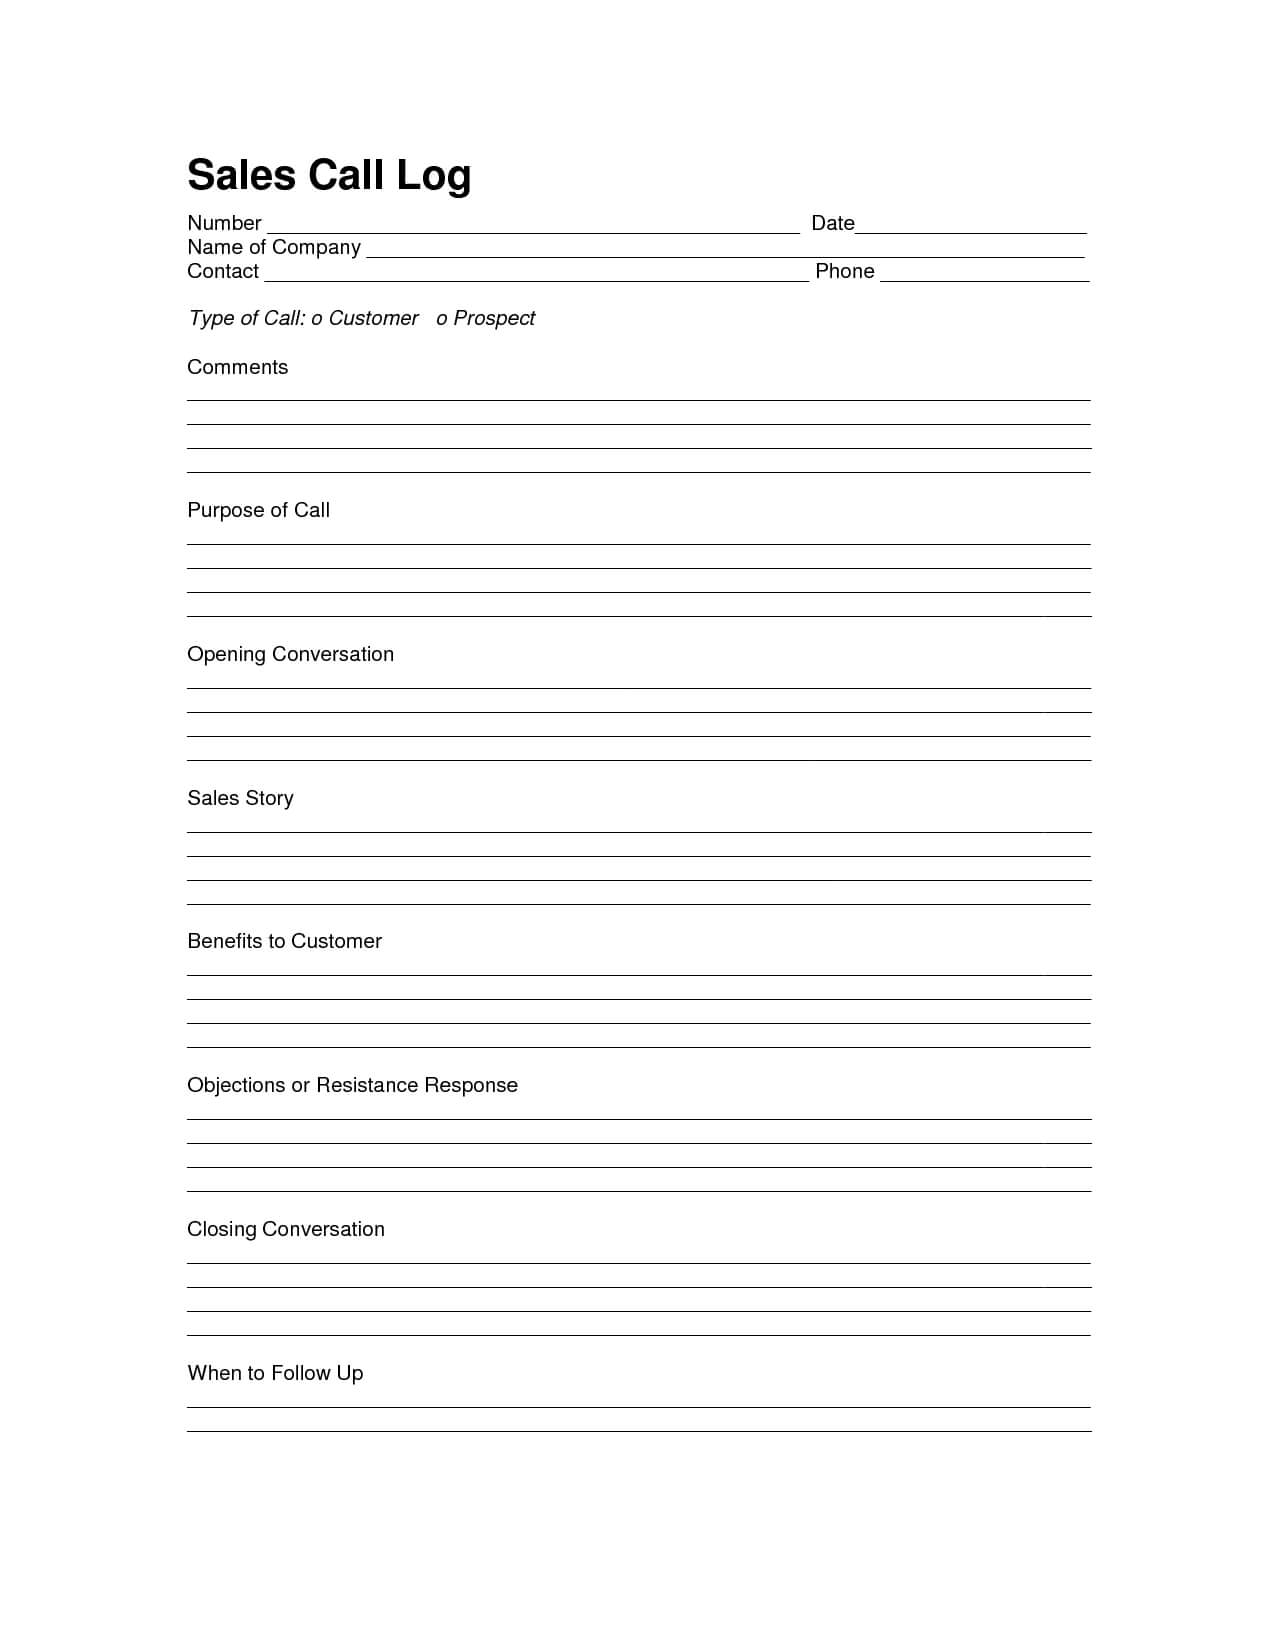 Sales Log Sheet Template | Sales Call Log Template | Call With Sales Call Reports Templates Free